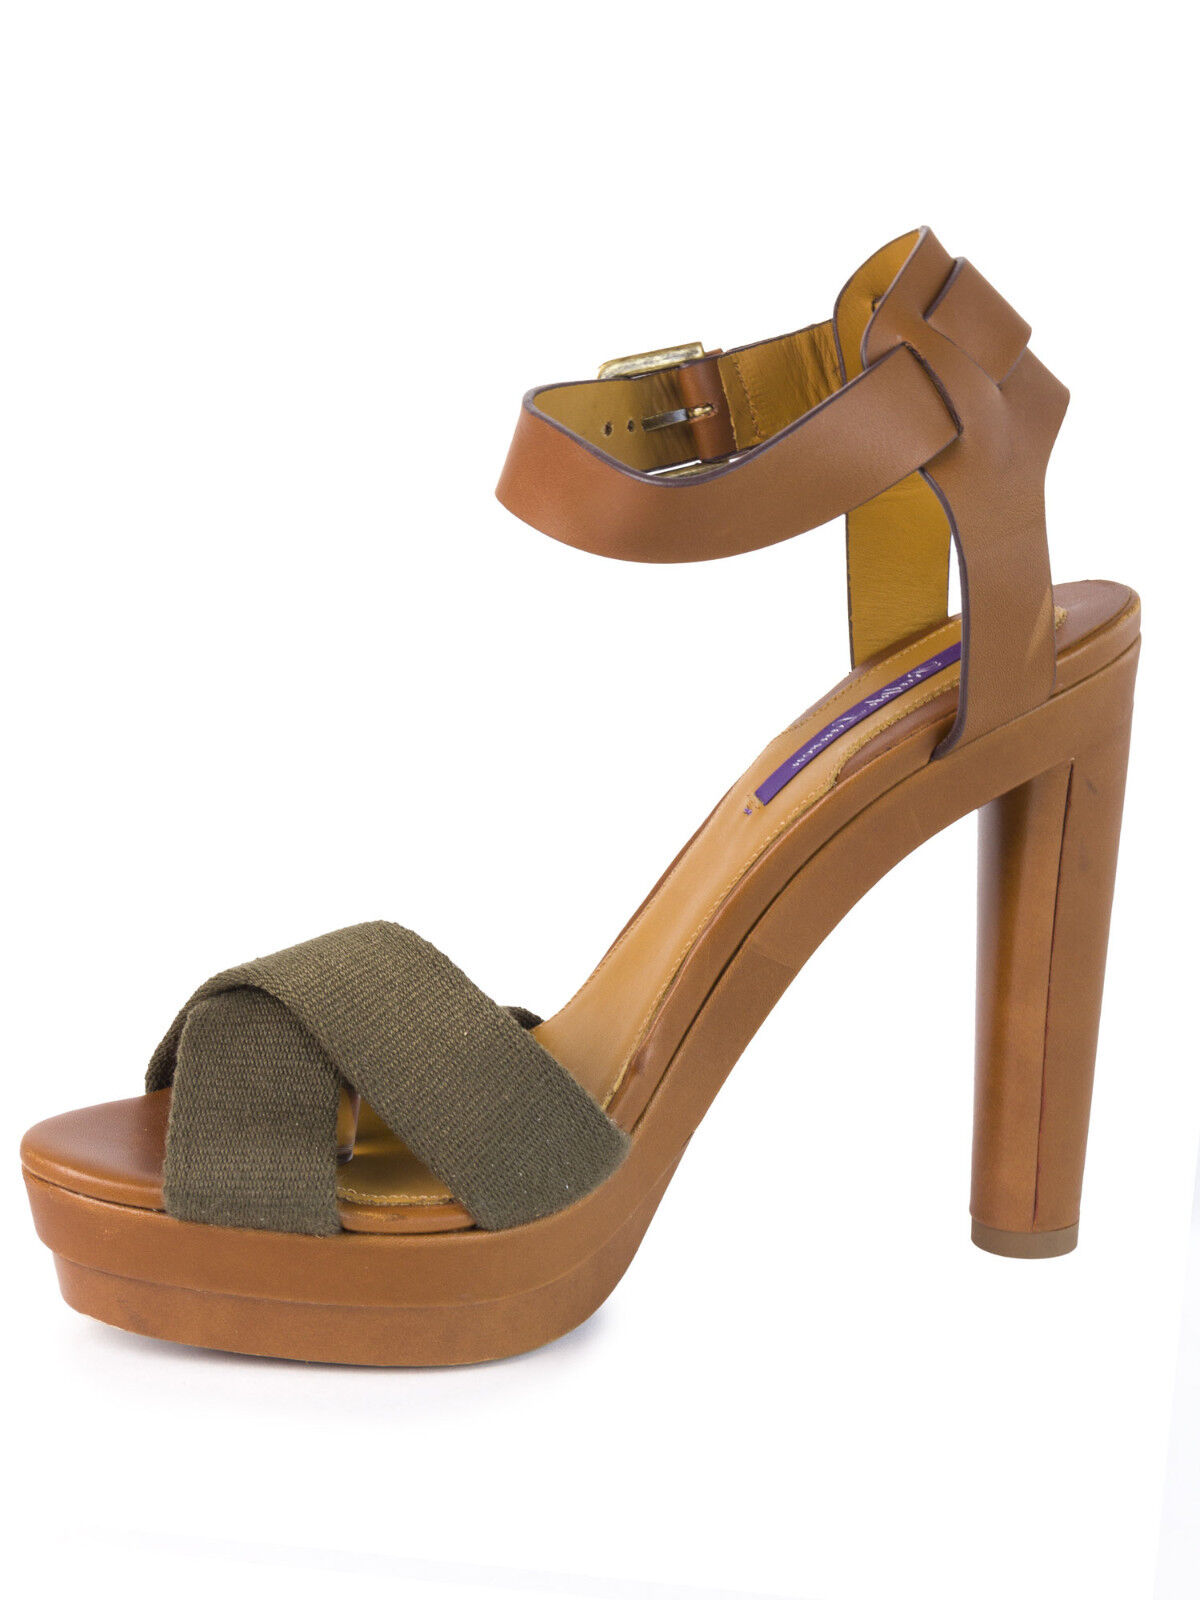 RALPH LAUREN Purple Label Women's Olive & Cognac Platform Sandals Sz 11.5  595